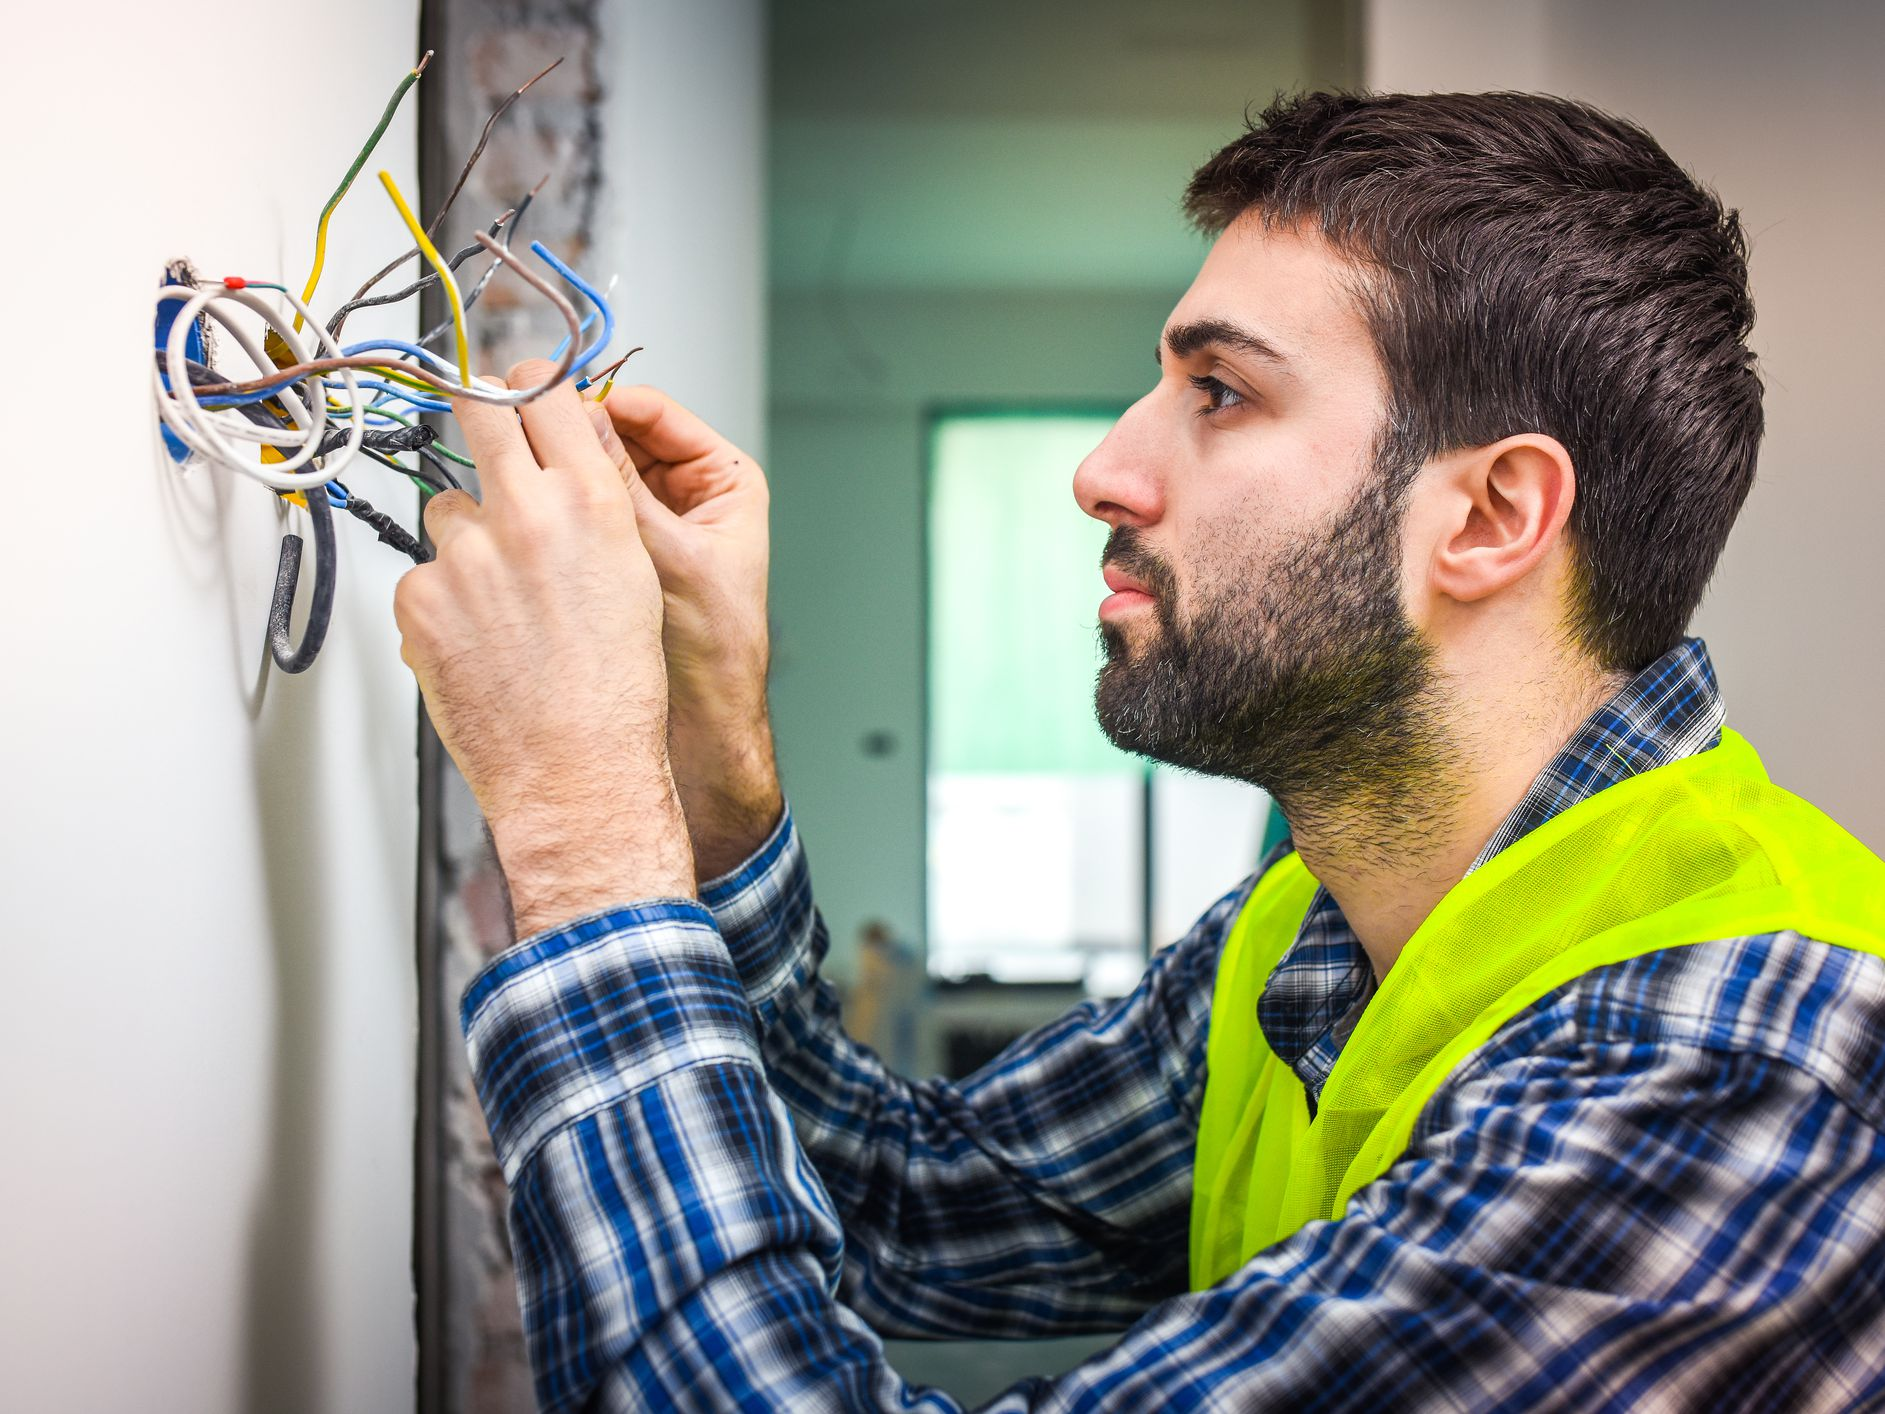 6 Common Wire Connection Problems and Their Solutions